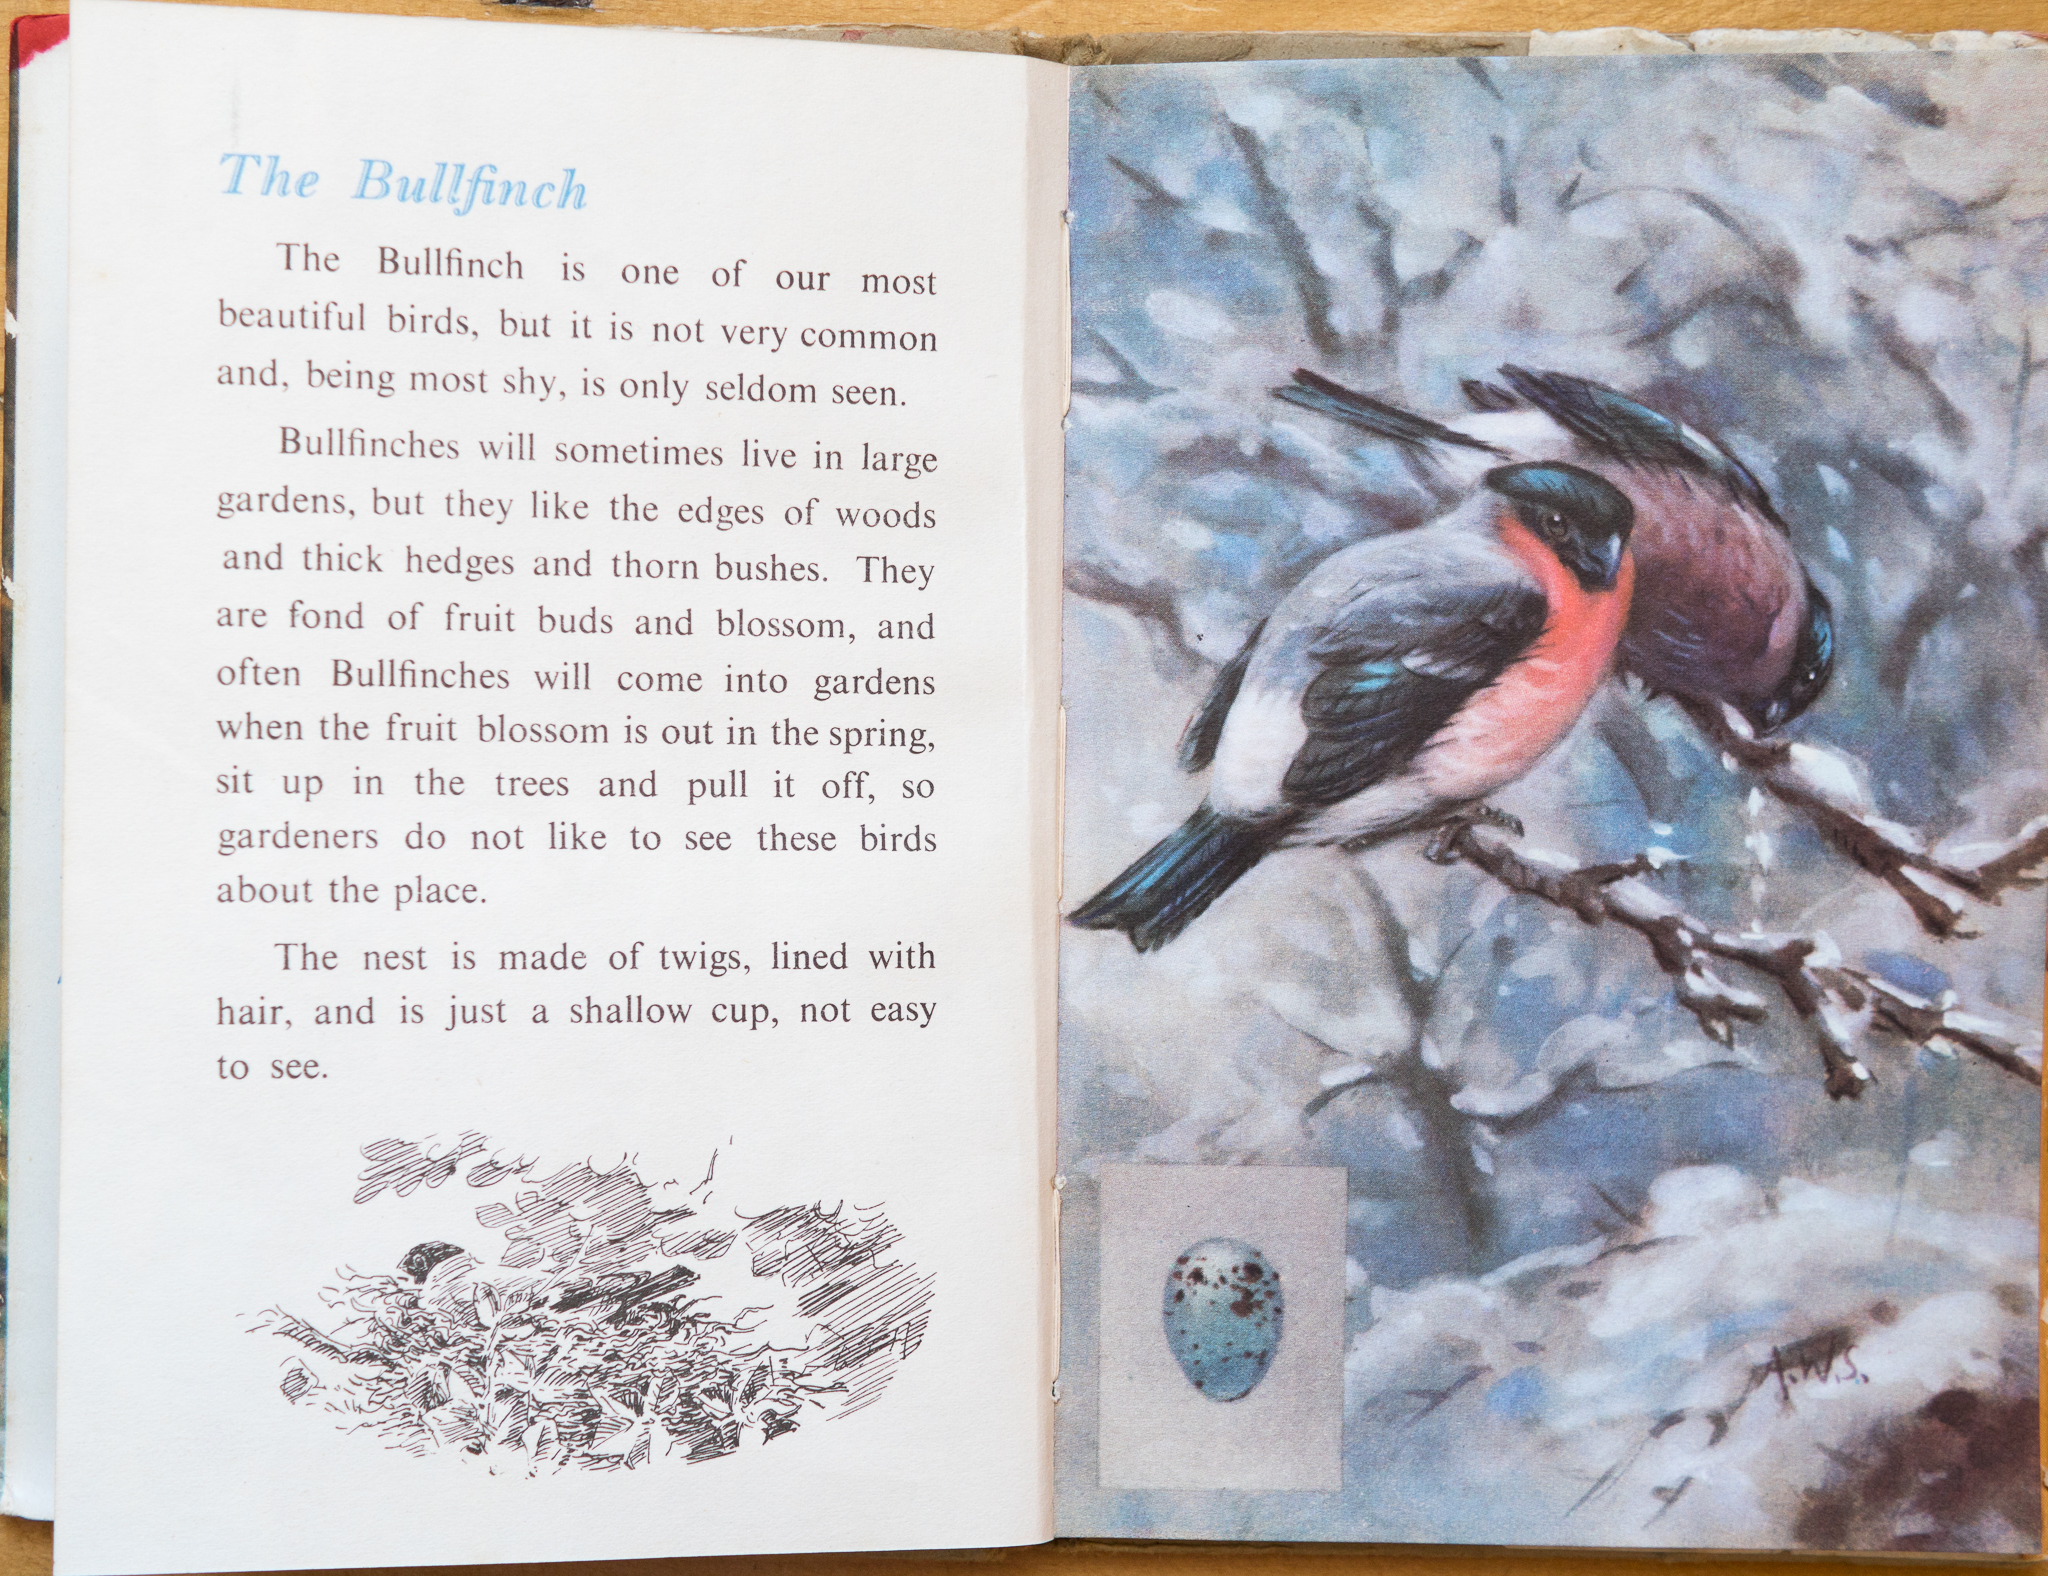 The Bullfinch - Ladybird Book of British Birds - The Hall of Einar